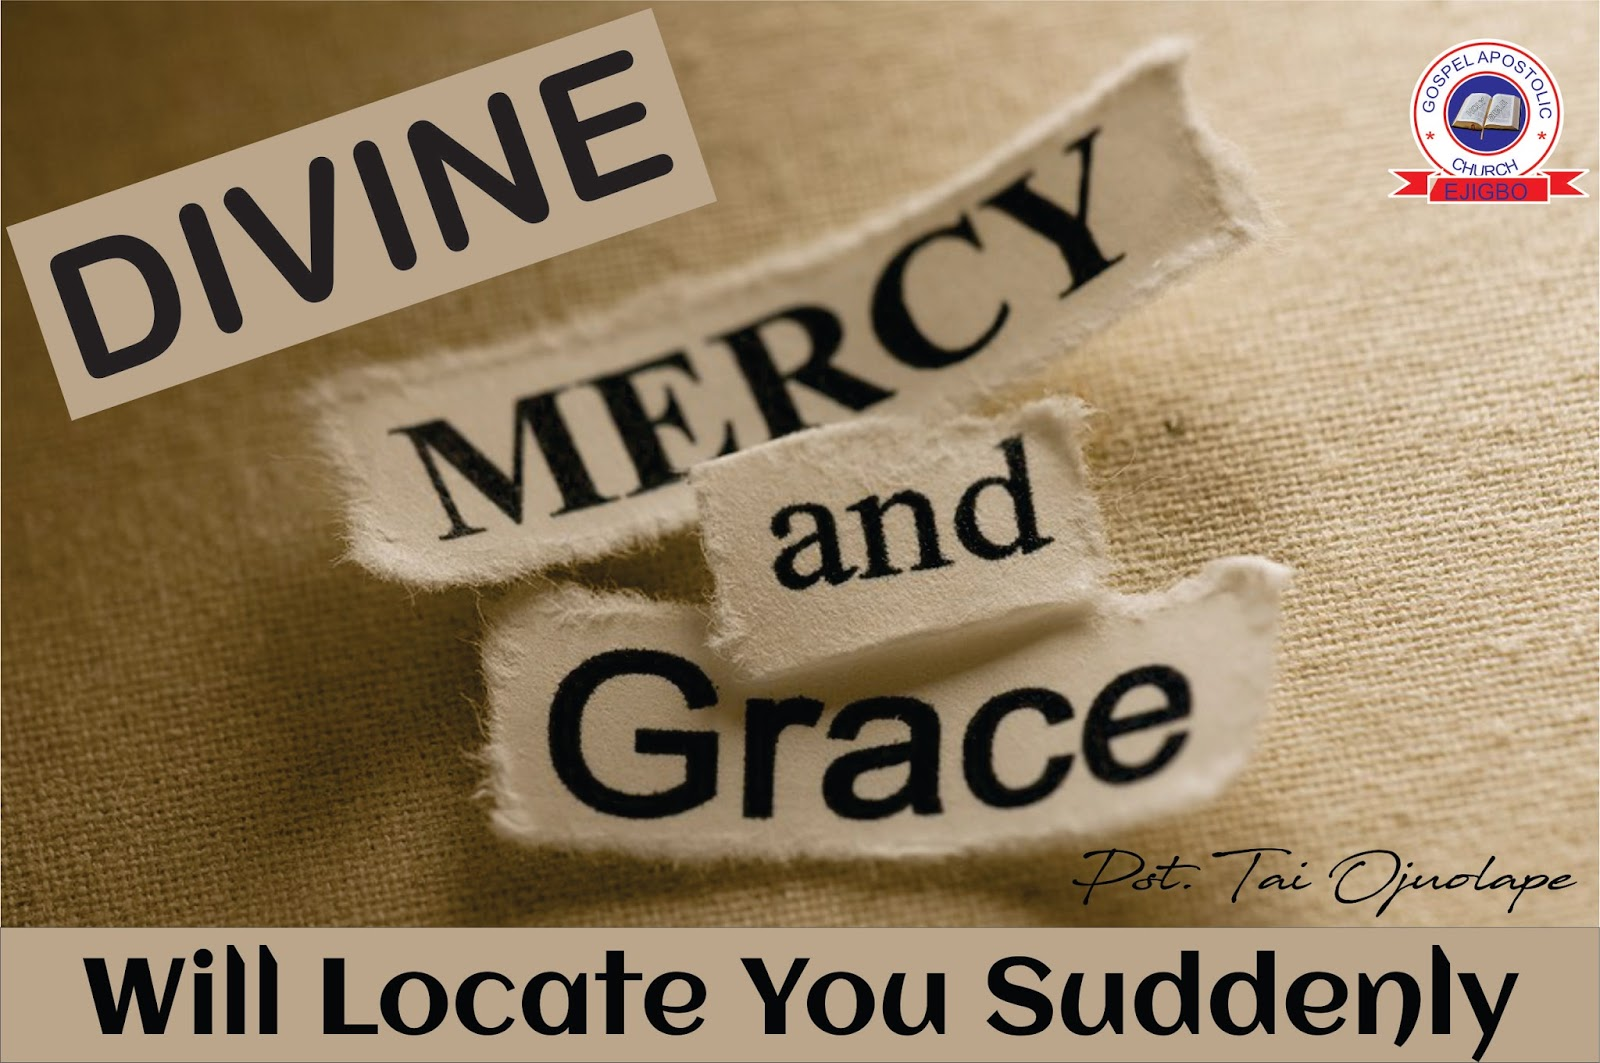 Grace versus mercy